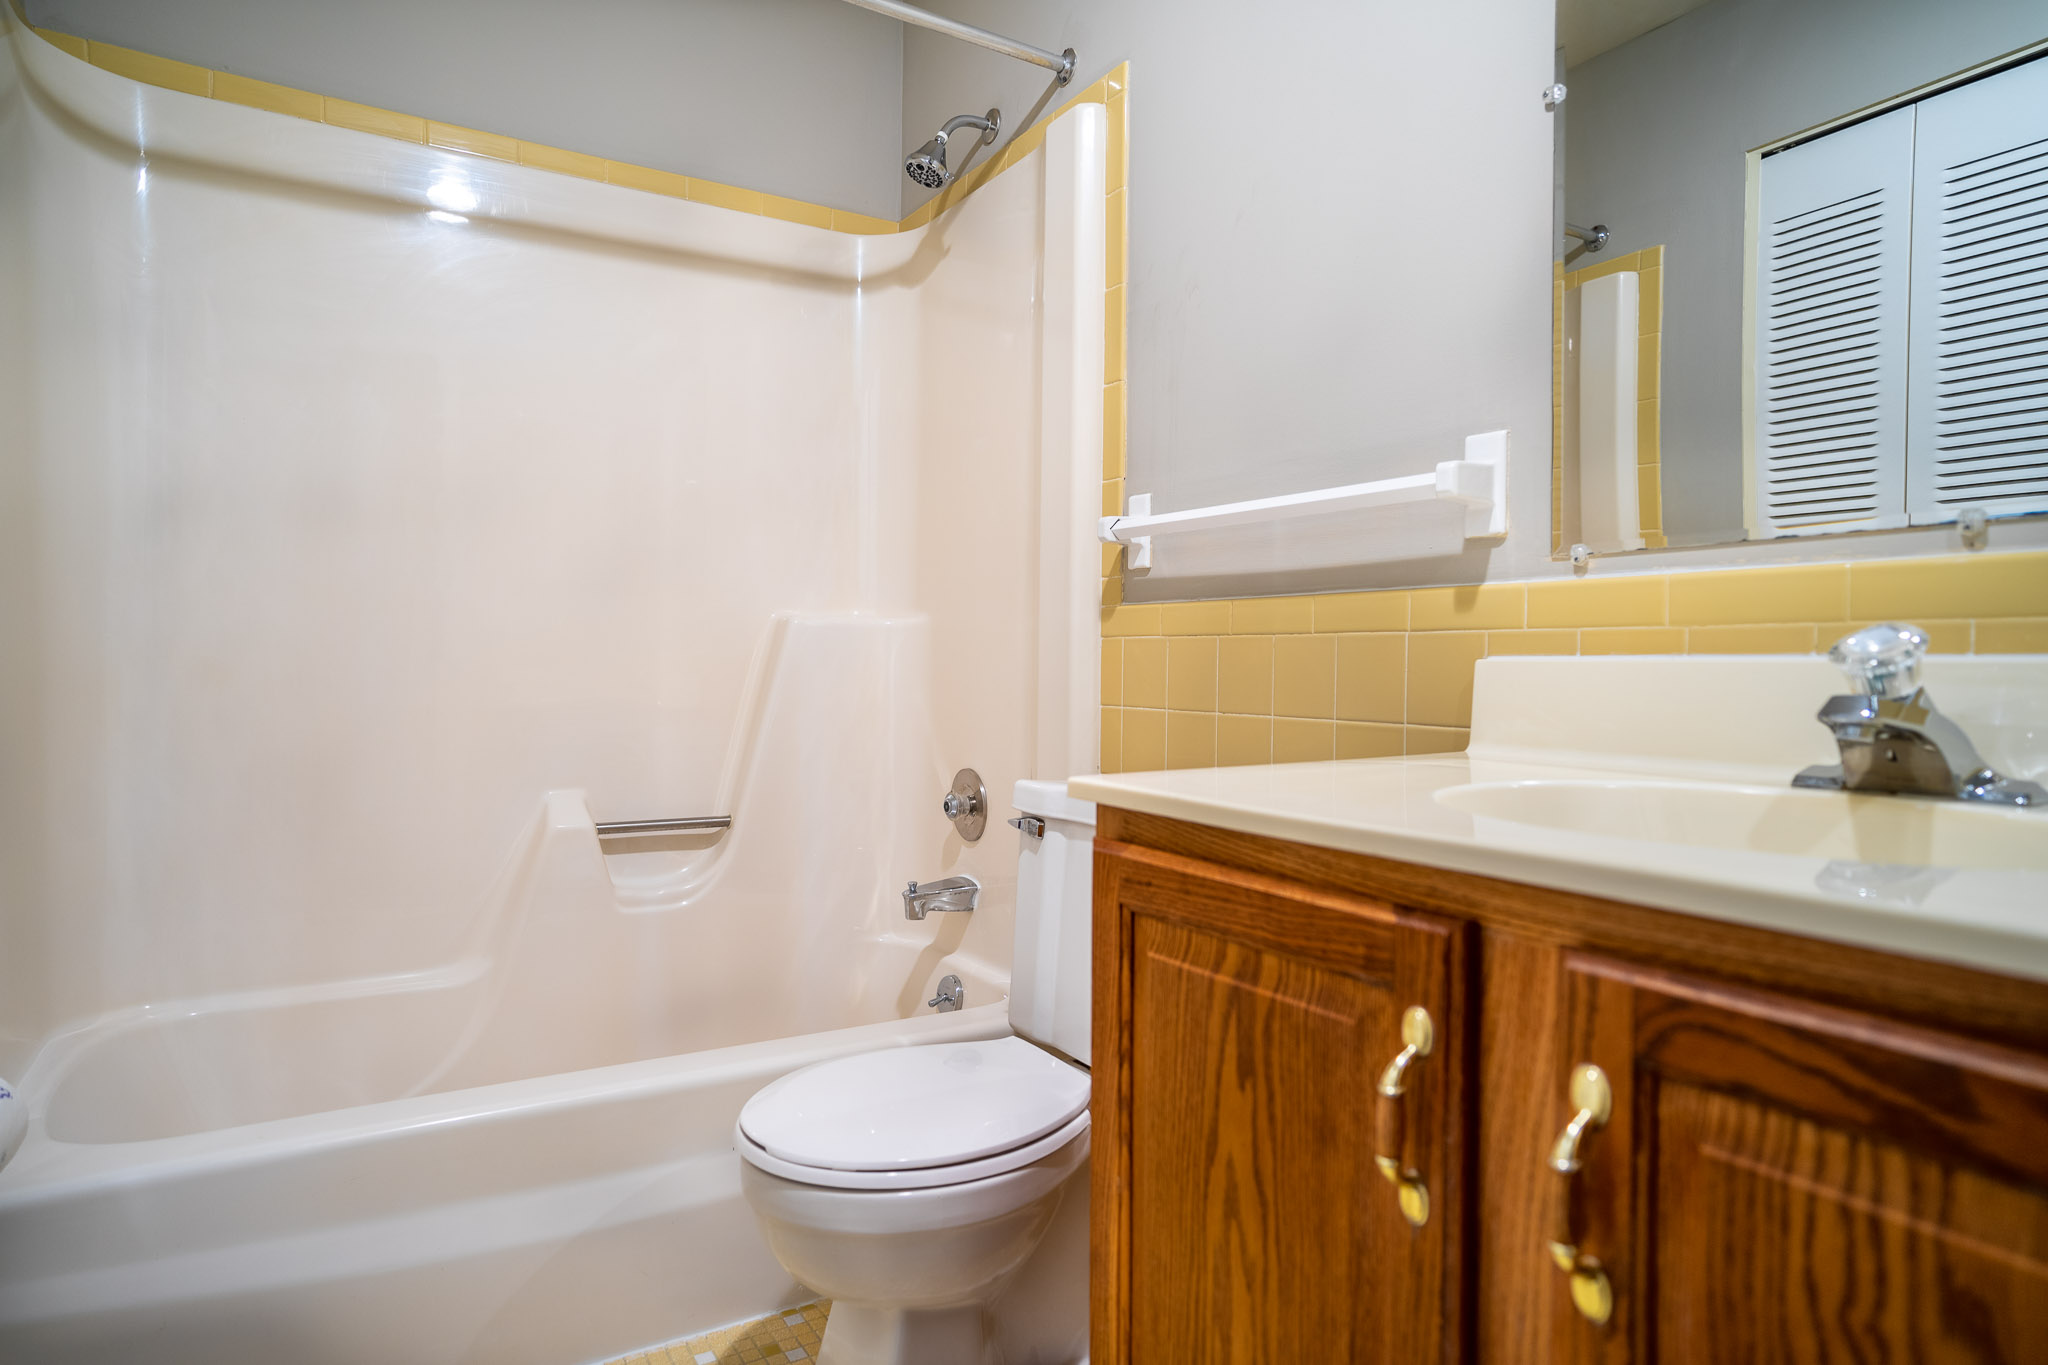 Bathroom at the Little Creek Apartments in Rochester, NY